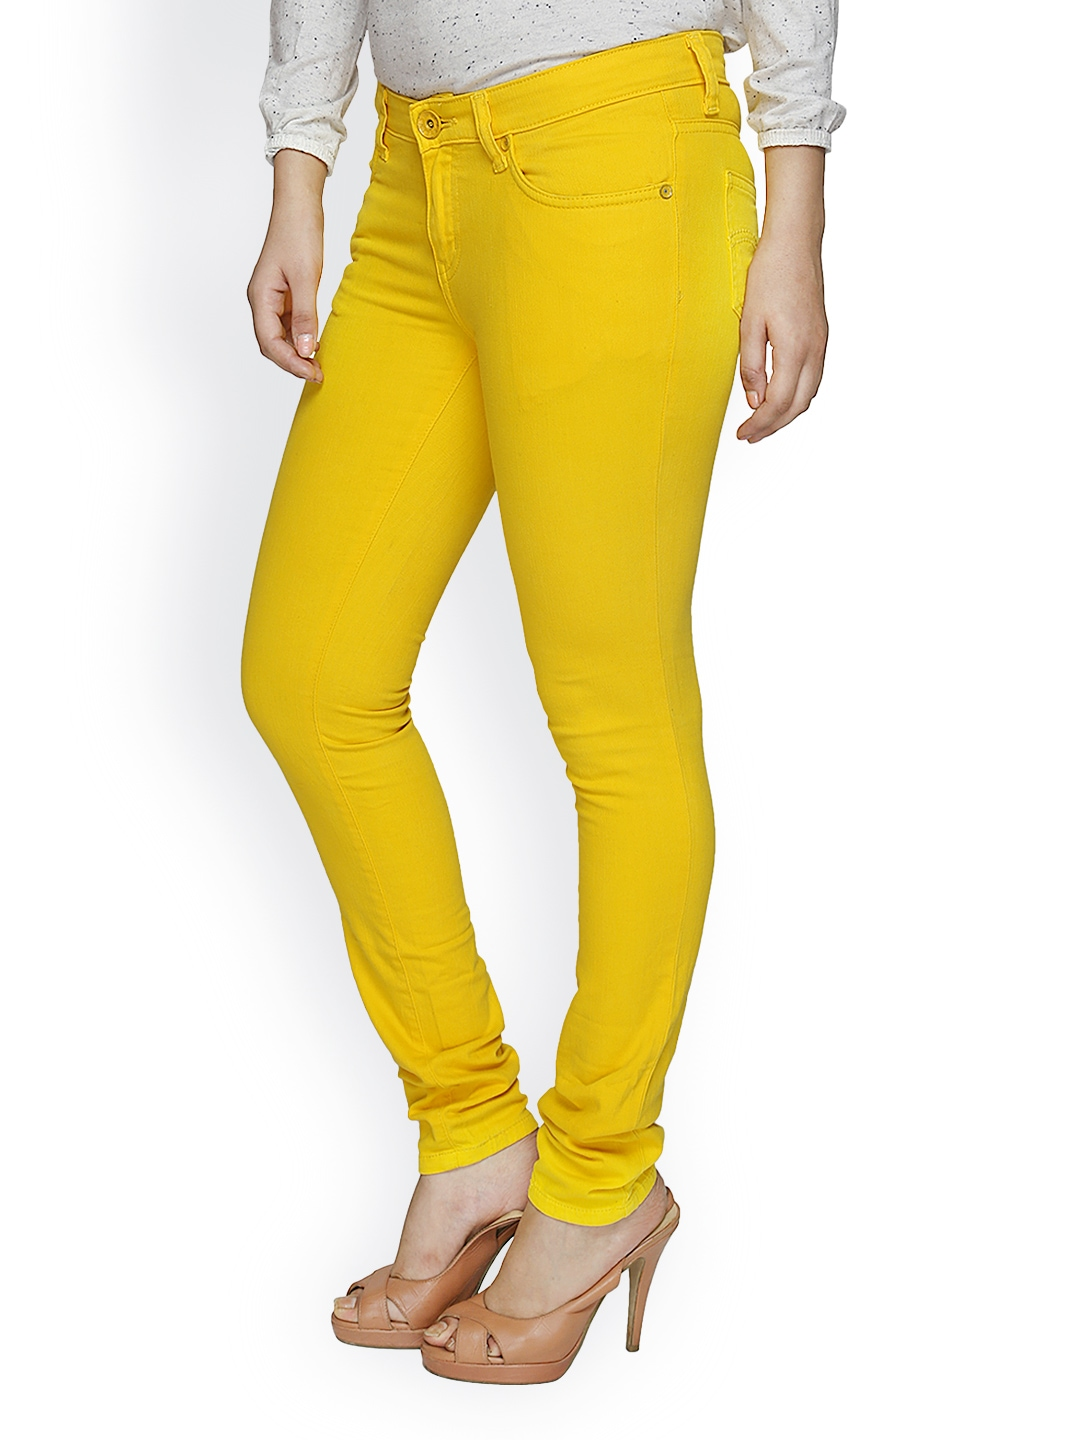 Best prices on Yellow skinny jeans womens in Women's Jeans online. Visit Bizrate to find the best deals on top brands. Read reviews on Clothing & Accessories merchants and buy with confidence.